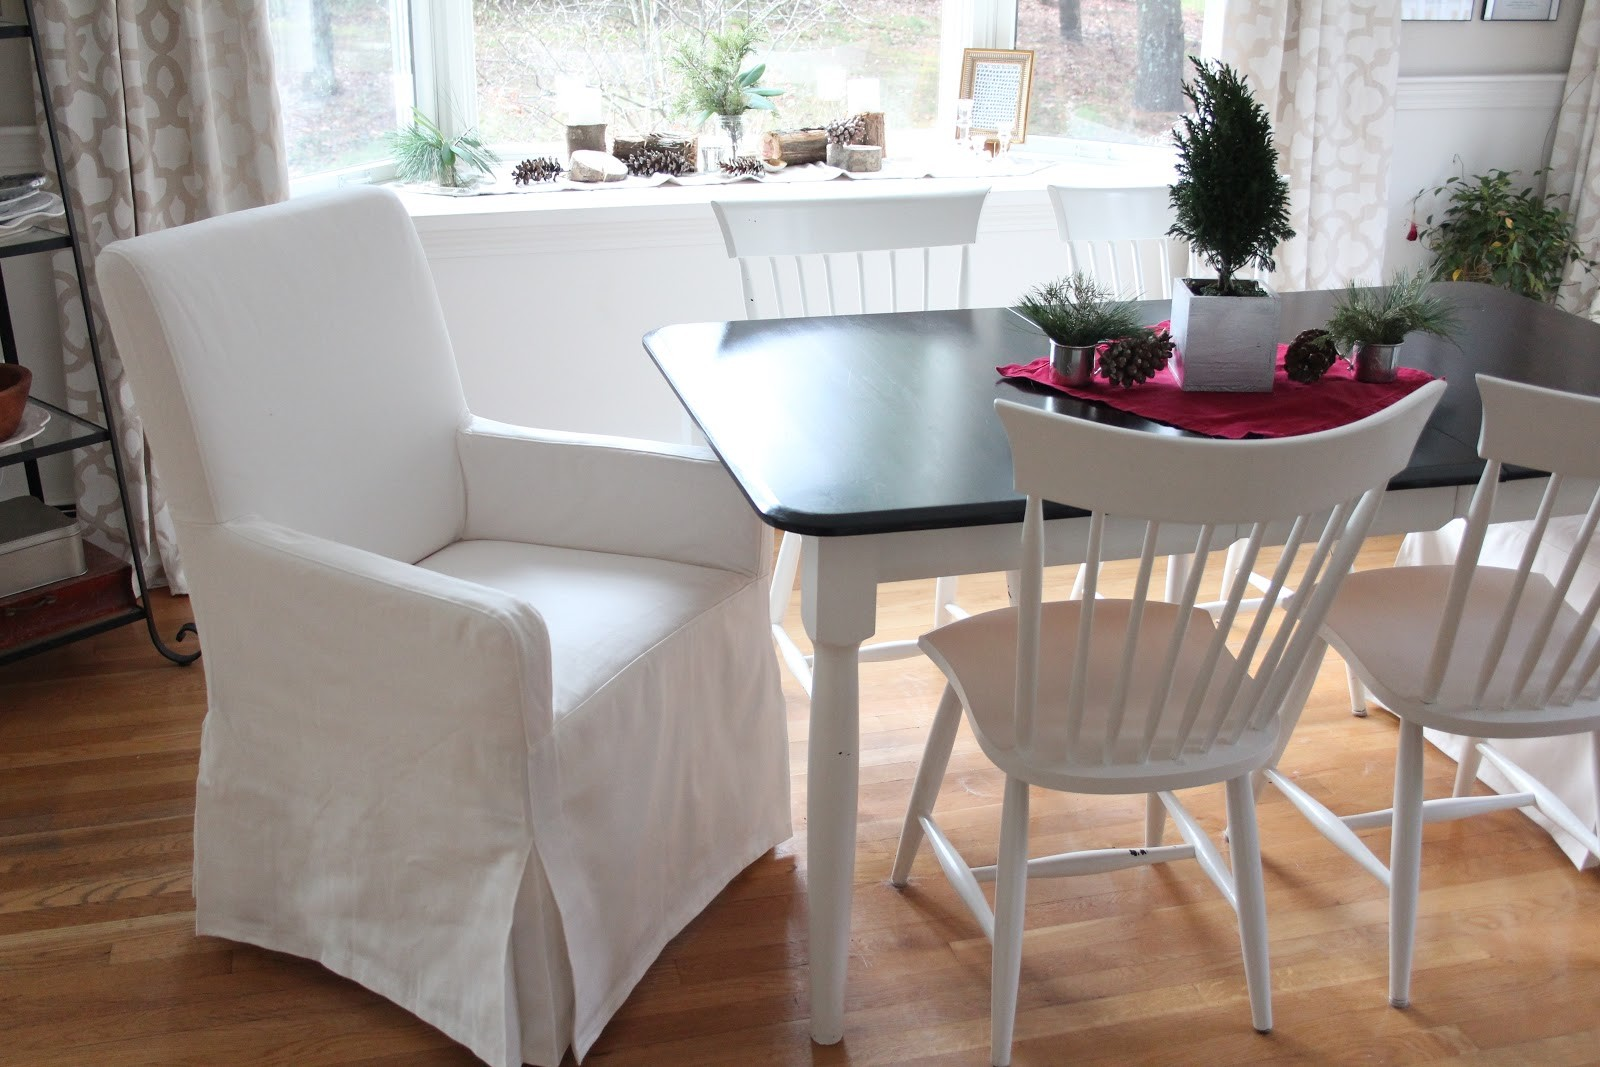 Slipcovers For Dining Room Chairs Without Arms